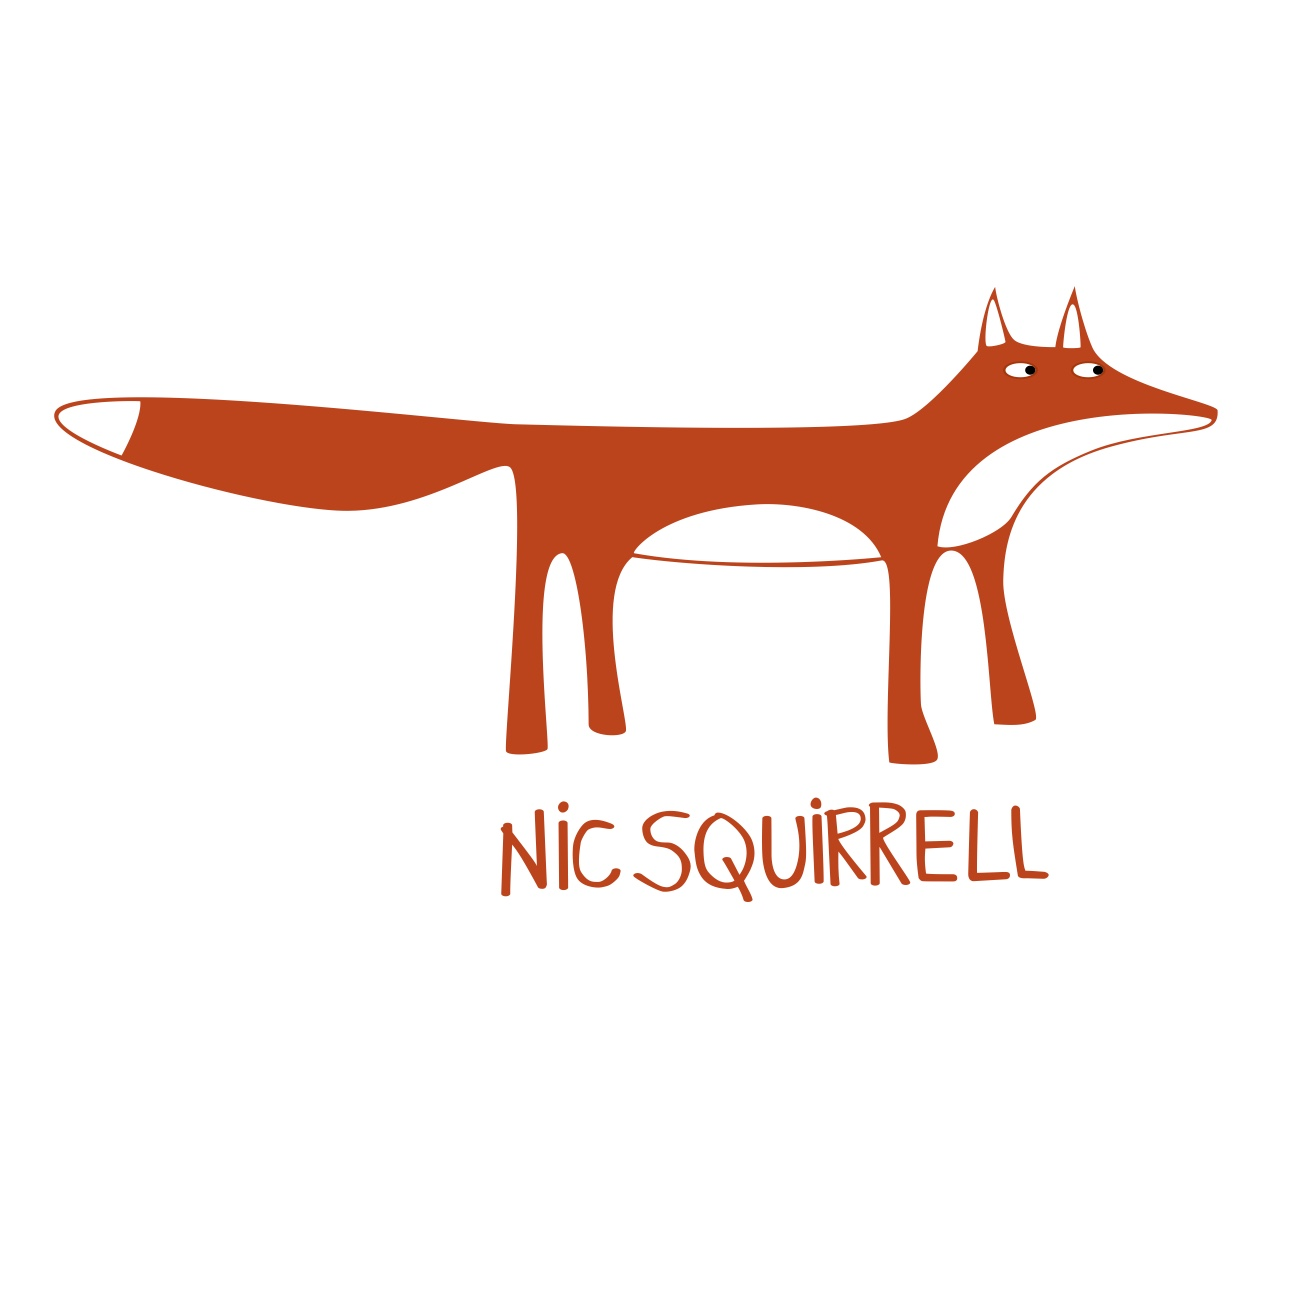 Nic Squirrell's profile picture